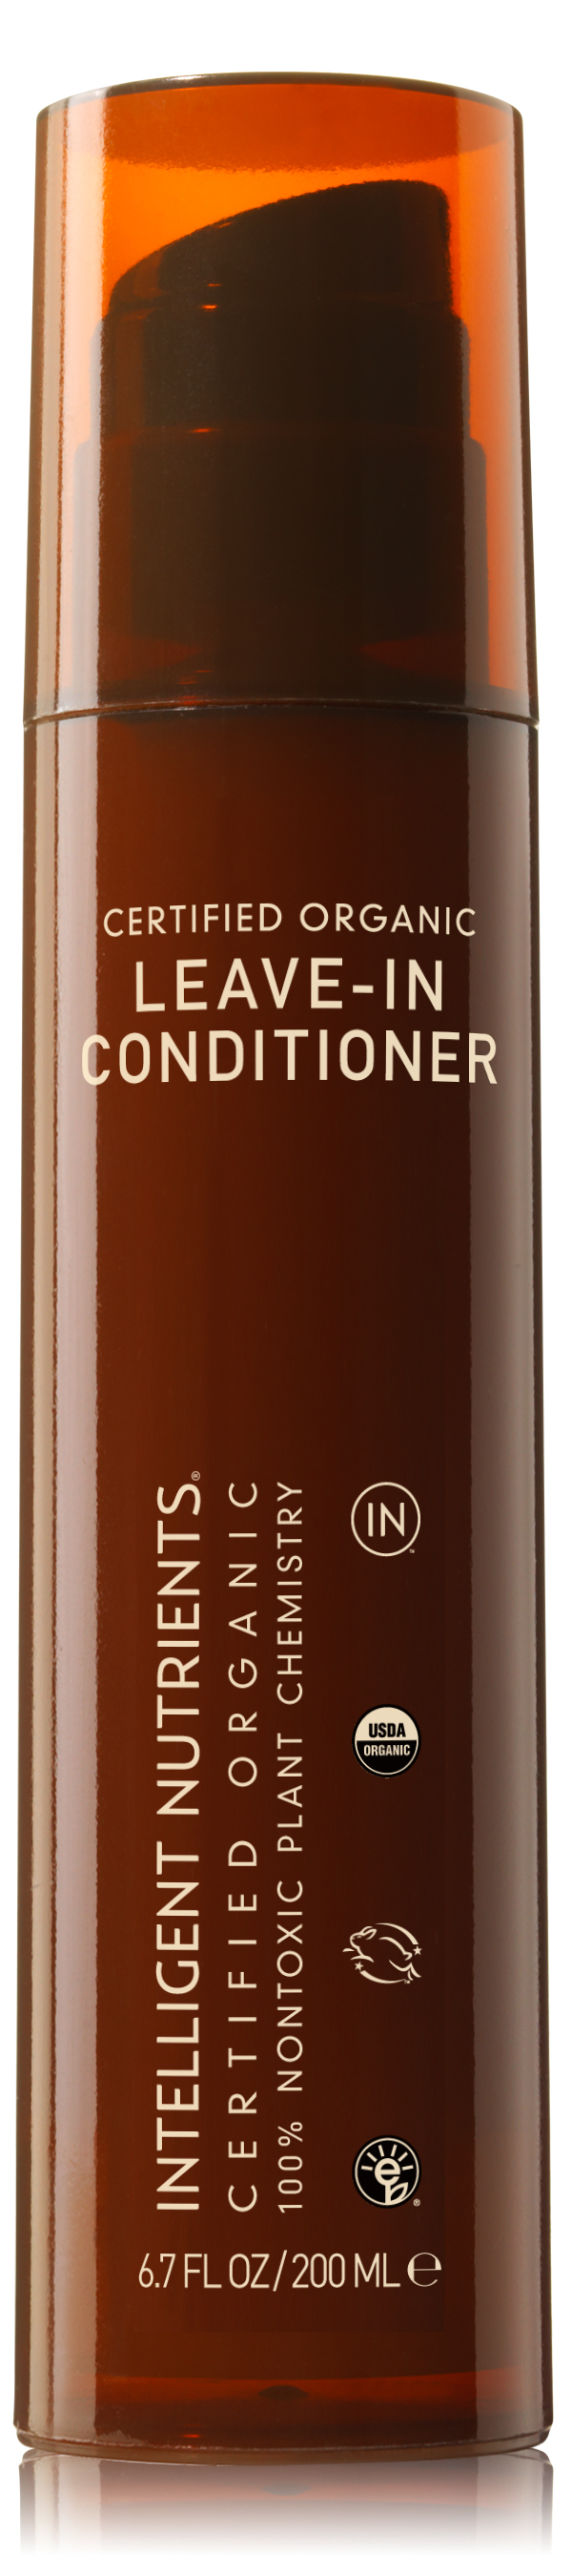 Leave-in Conditioner (DKK295/200ml)